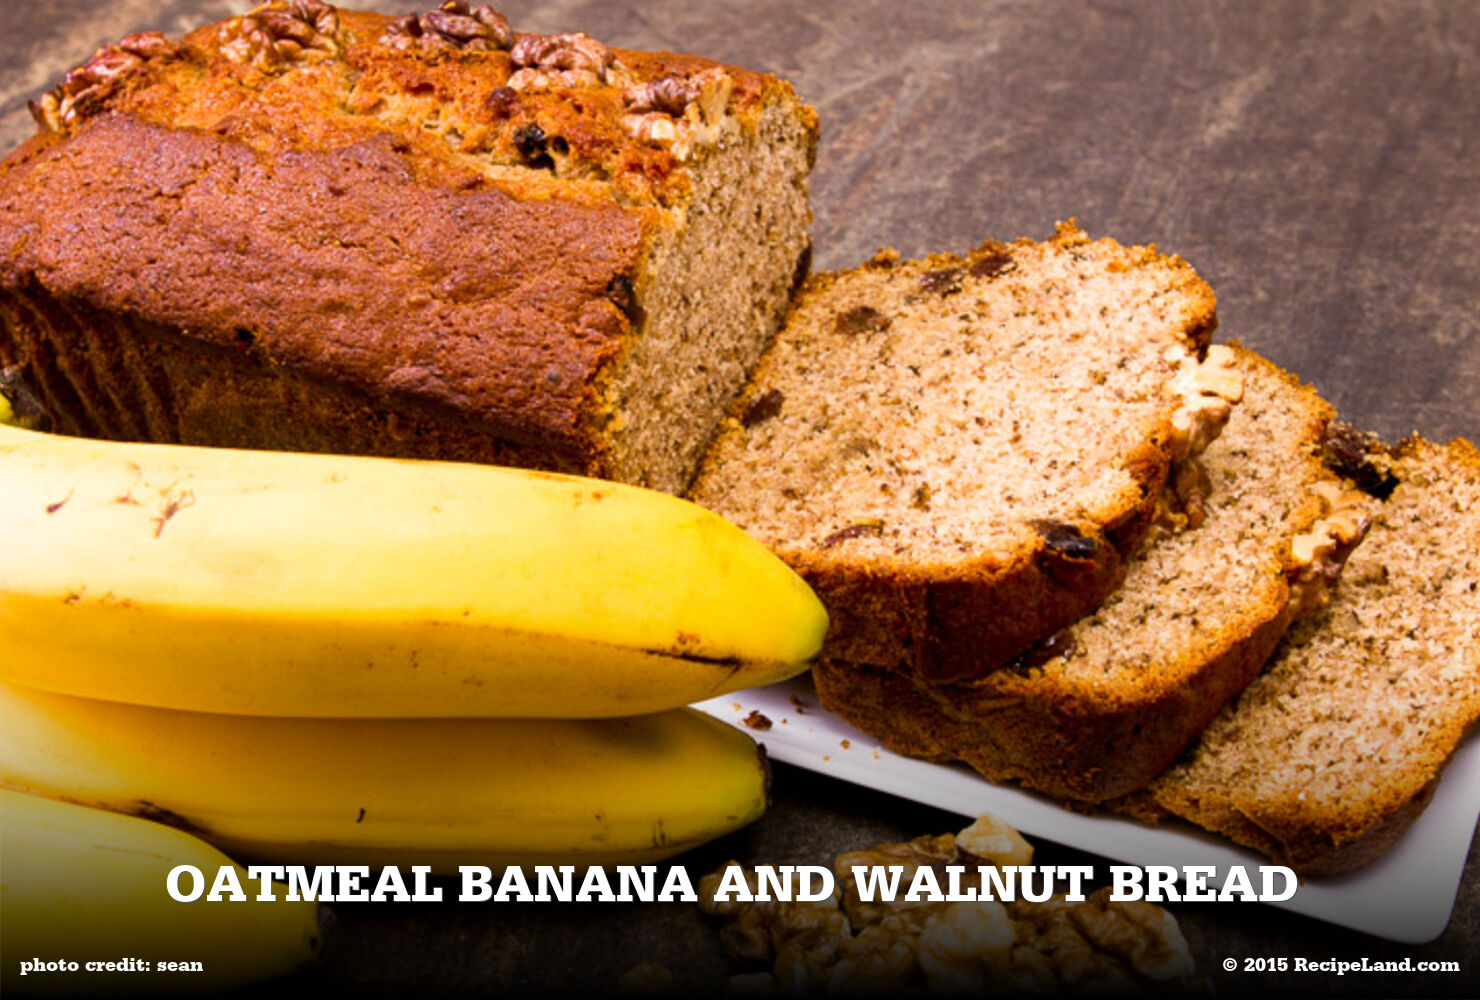 Oatmeal Banana and Walnut Bread